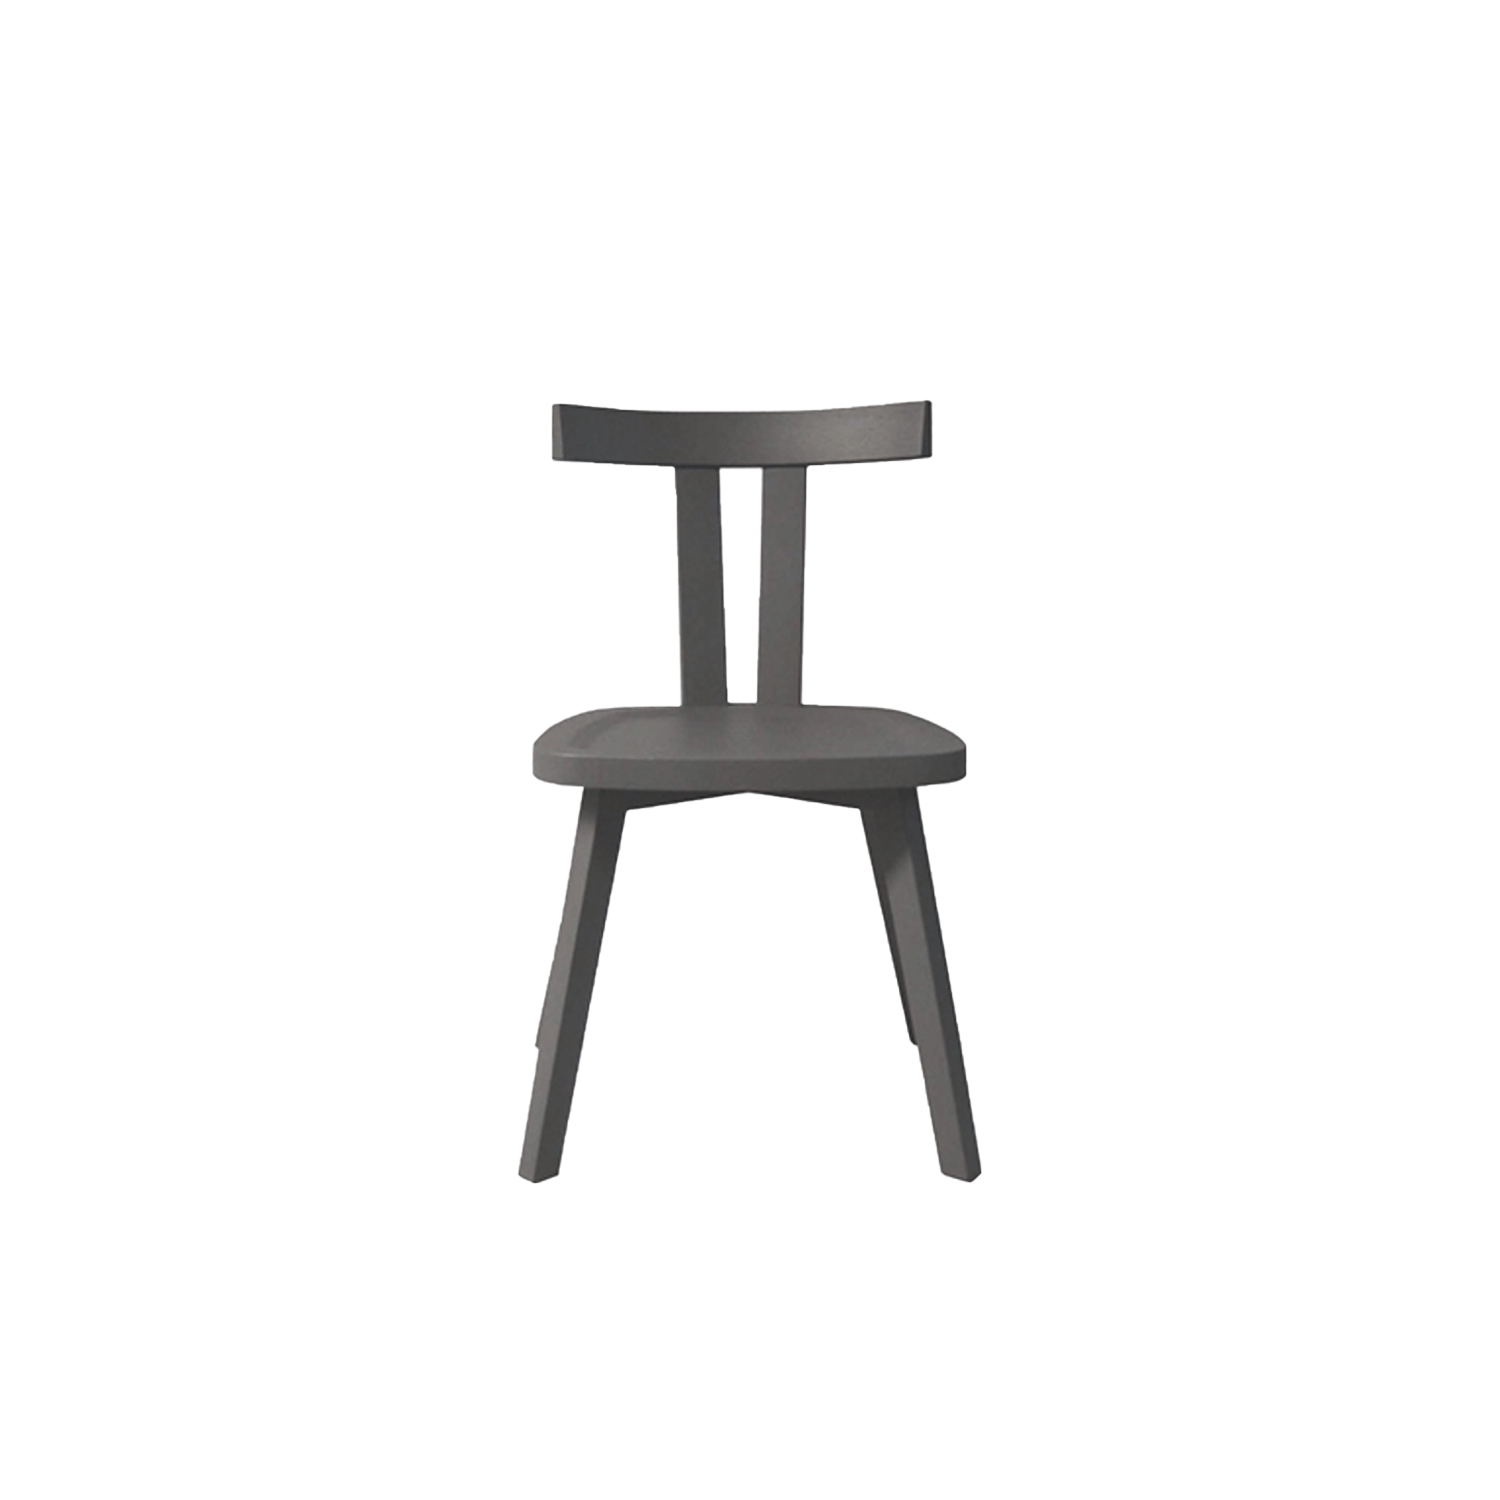 Gray 23 Chair - The Gray collection is a combination of apparently incompatible elements achieving a result which is contemporary, poetic and attractive. Gray takes inspiration from two styles, the neo-classic gustavian and the scandinavian one from the seventies. Armchairs, sofas, tables, beds and storages are the elements of this line made of a material such as turned and shaped wood, woven fibre, slate, china, marble and mirror. The plain elegance of the XVIII century furniture melts with the sobriety of the scandinavian design, which is more familiar to us. The wooden surfaces are mat and chalky, lead grey and white. grey and white are also the colours f the striped fabrics covering the models and the knit made jacquard patterns used for the cushions. Crochet laces are the decoration of the mirror front doors of the storages. China and natural american walnut are the materials which give harmony to the complete line. Chair with frame in natural American walnut, natural oak, white or grey or air force blue or black oak; it's accompained with seat cushion with polyurethane foam; suitable for indoor use. Available with upholstered seat and back with polyurethane foam. Removable different types of fabric in different colours. An optional polyurethane back cushion is available in a combination of fabrics and colour. Please enquire for further information.  | Matter of Stuff